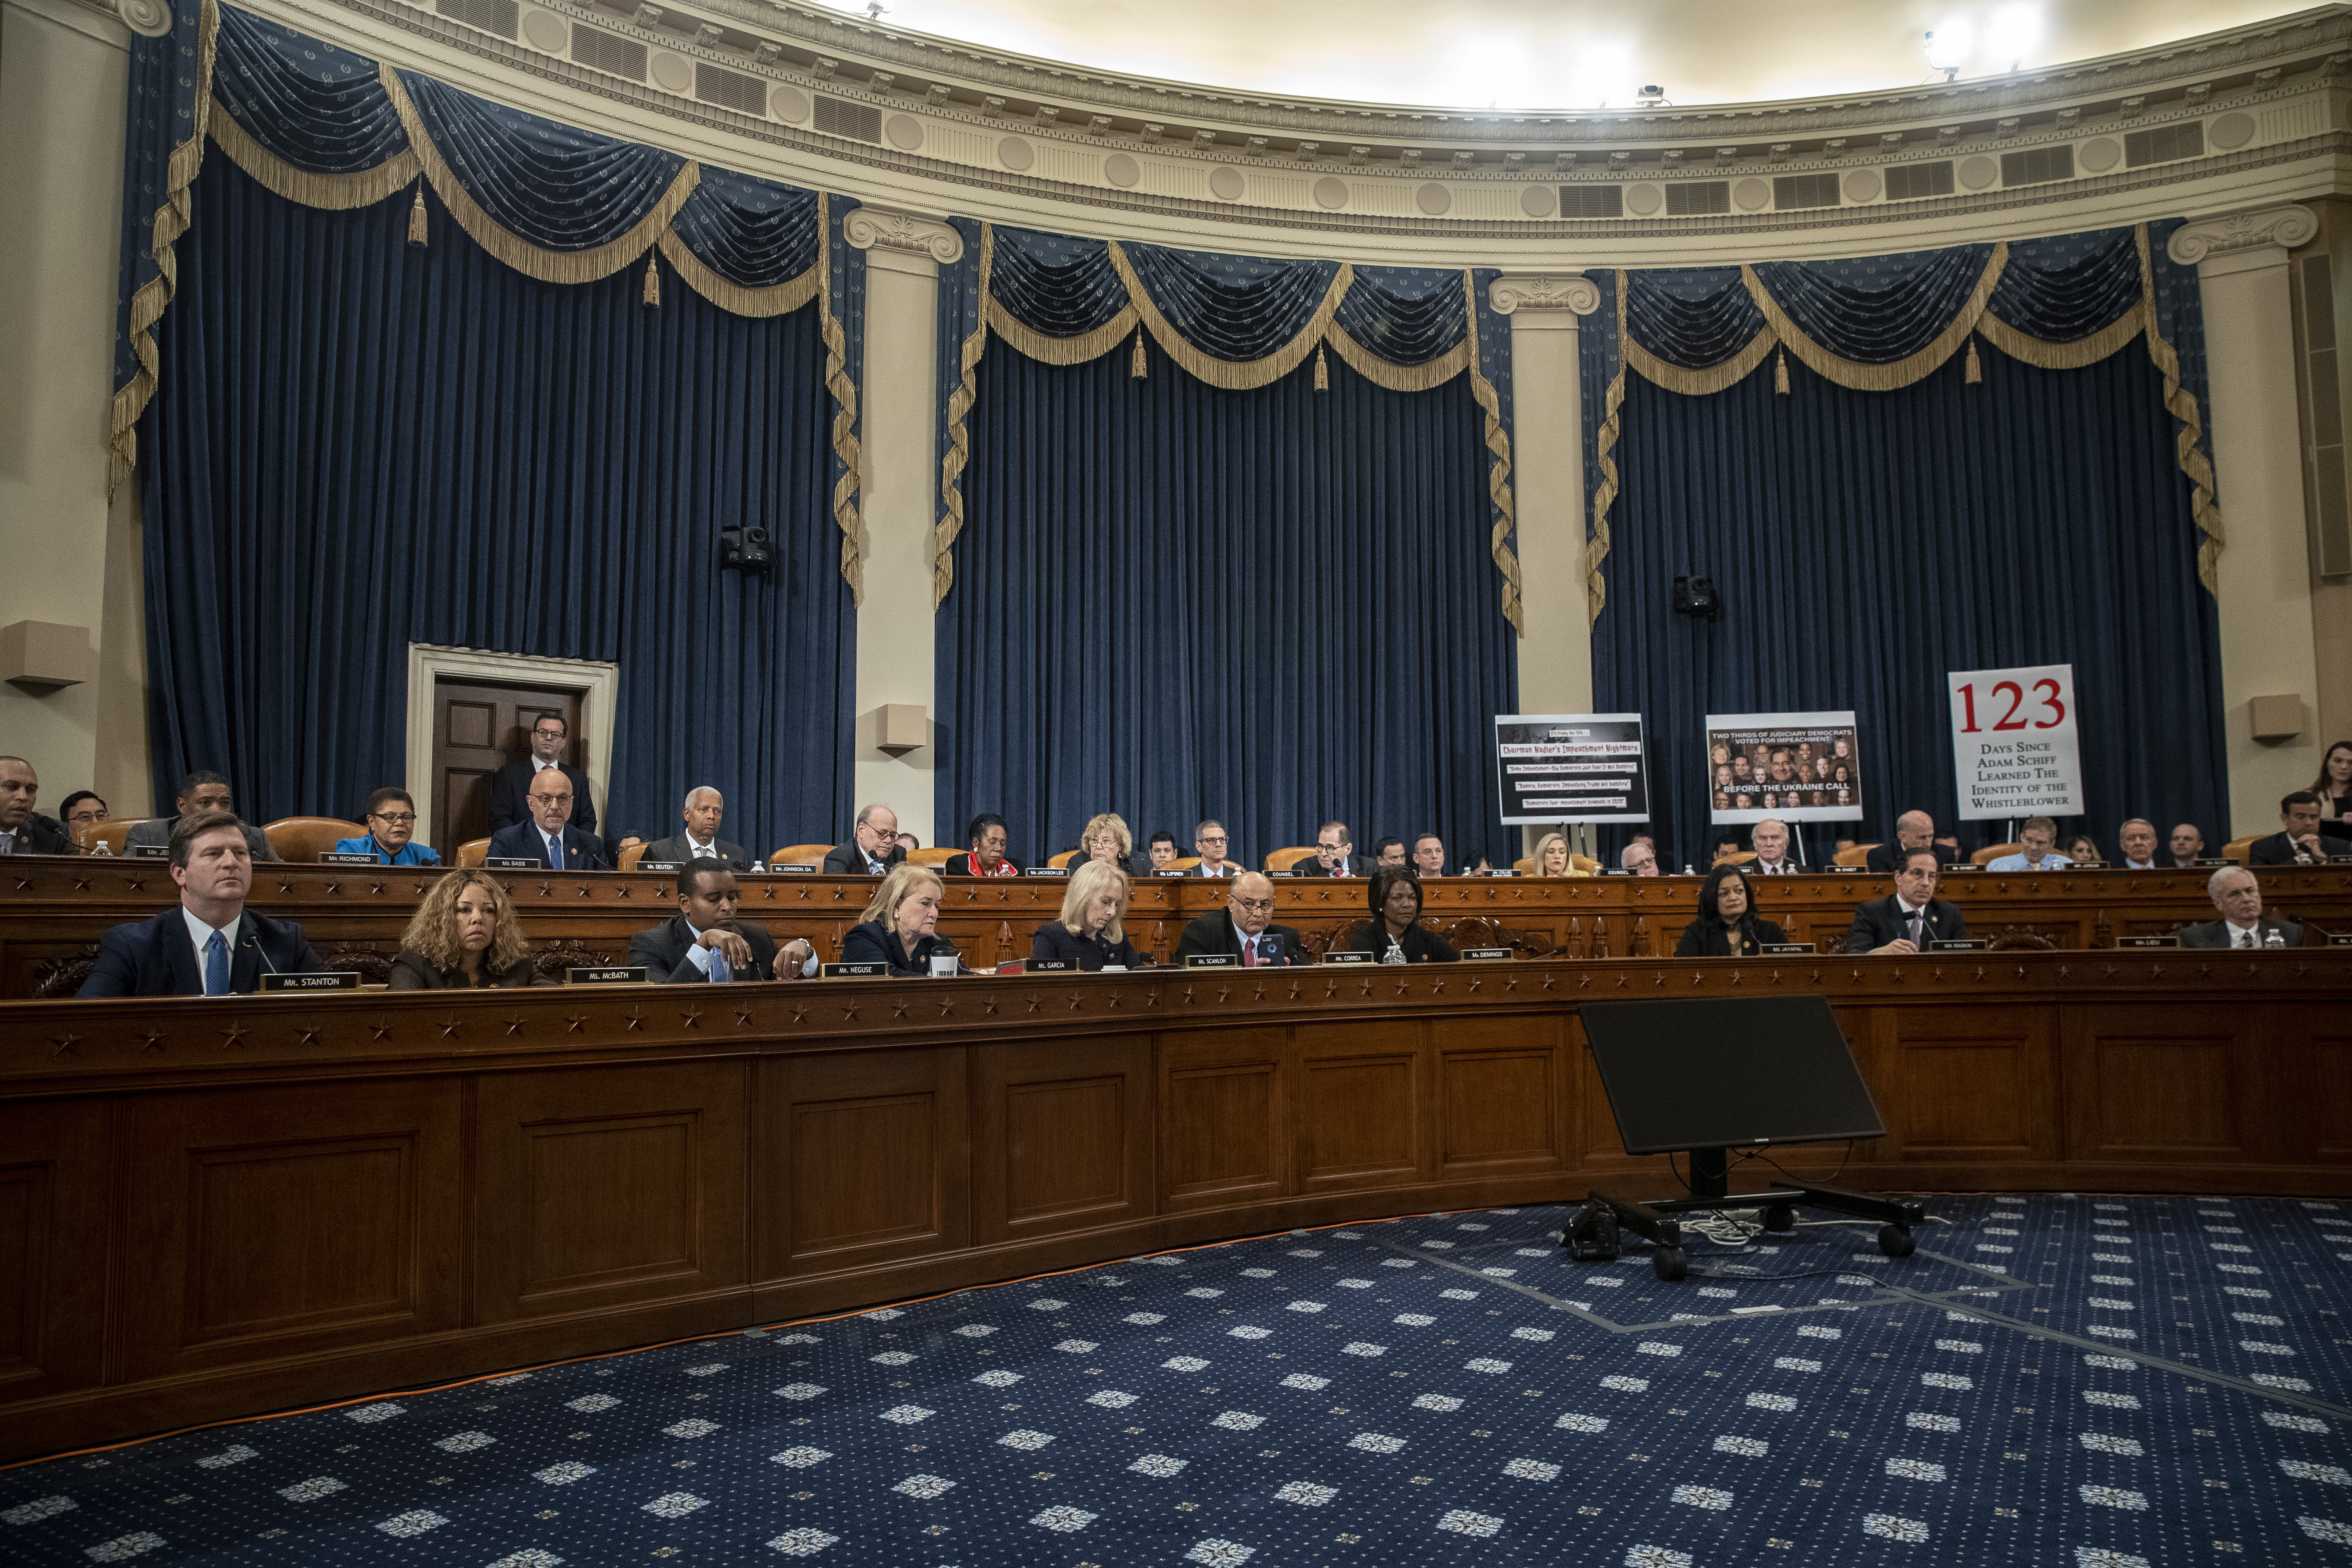 The House Judiciary Committee votes on the two articles of impeachment against President Donald Trump on December 13, 2019. (Drew Angerer/Getty Images)